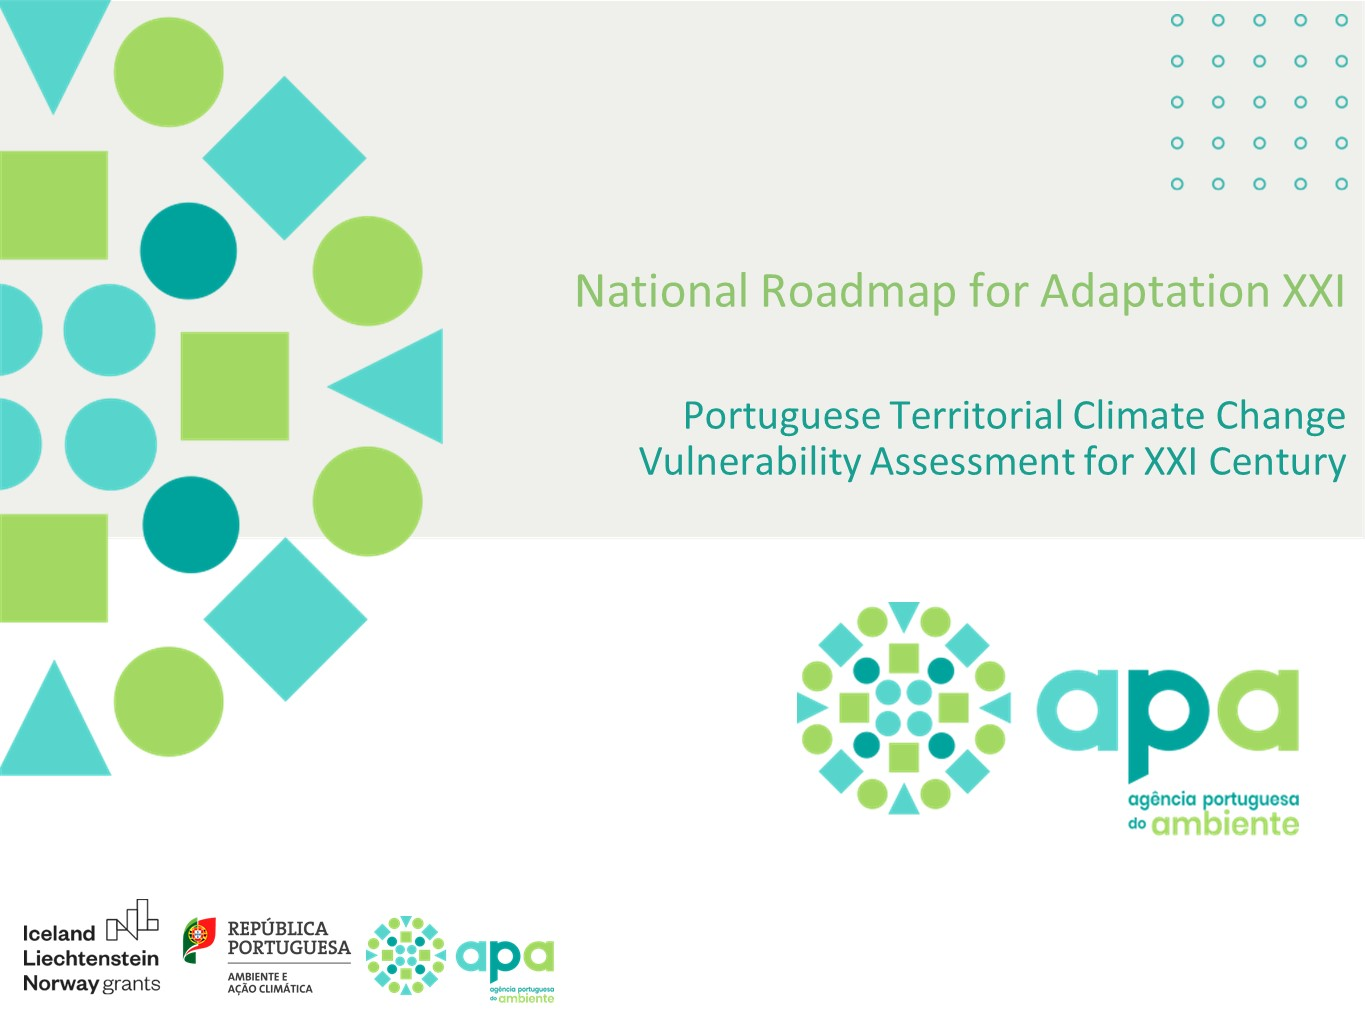 National Roadmap For Adaptation 2100